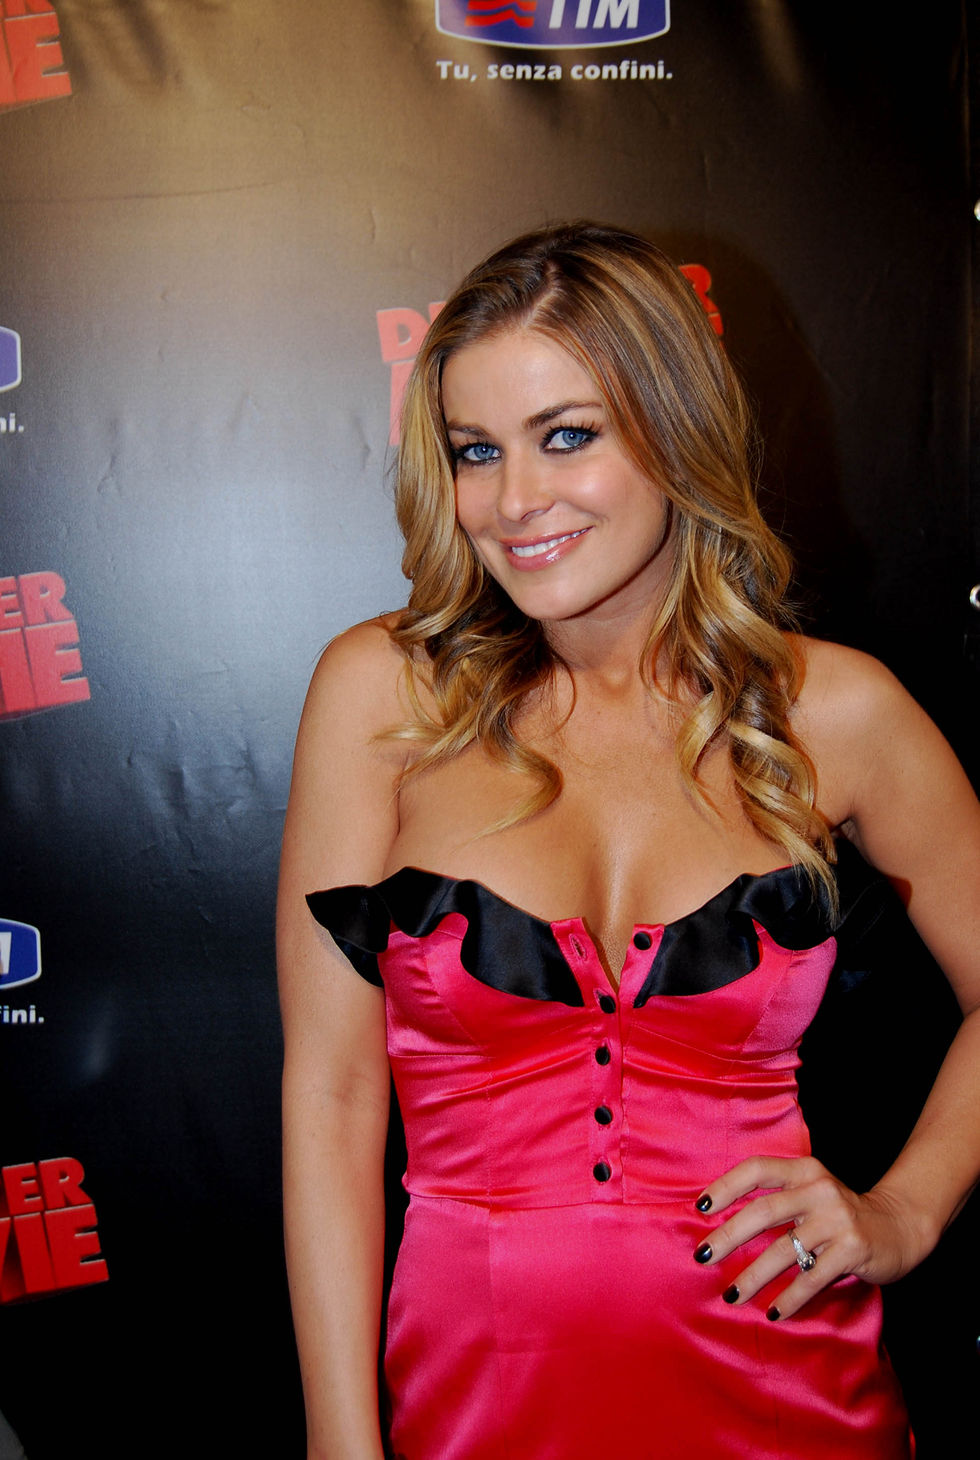 Carmen Electra in The Disaster Movie Premiere in Rome